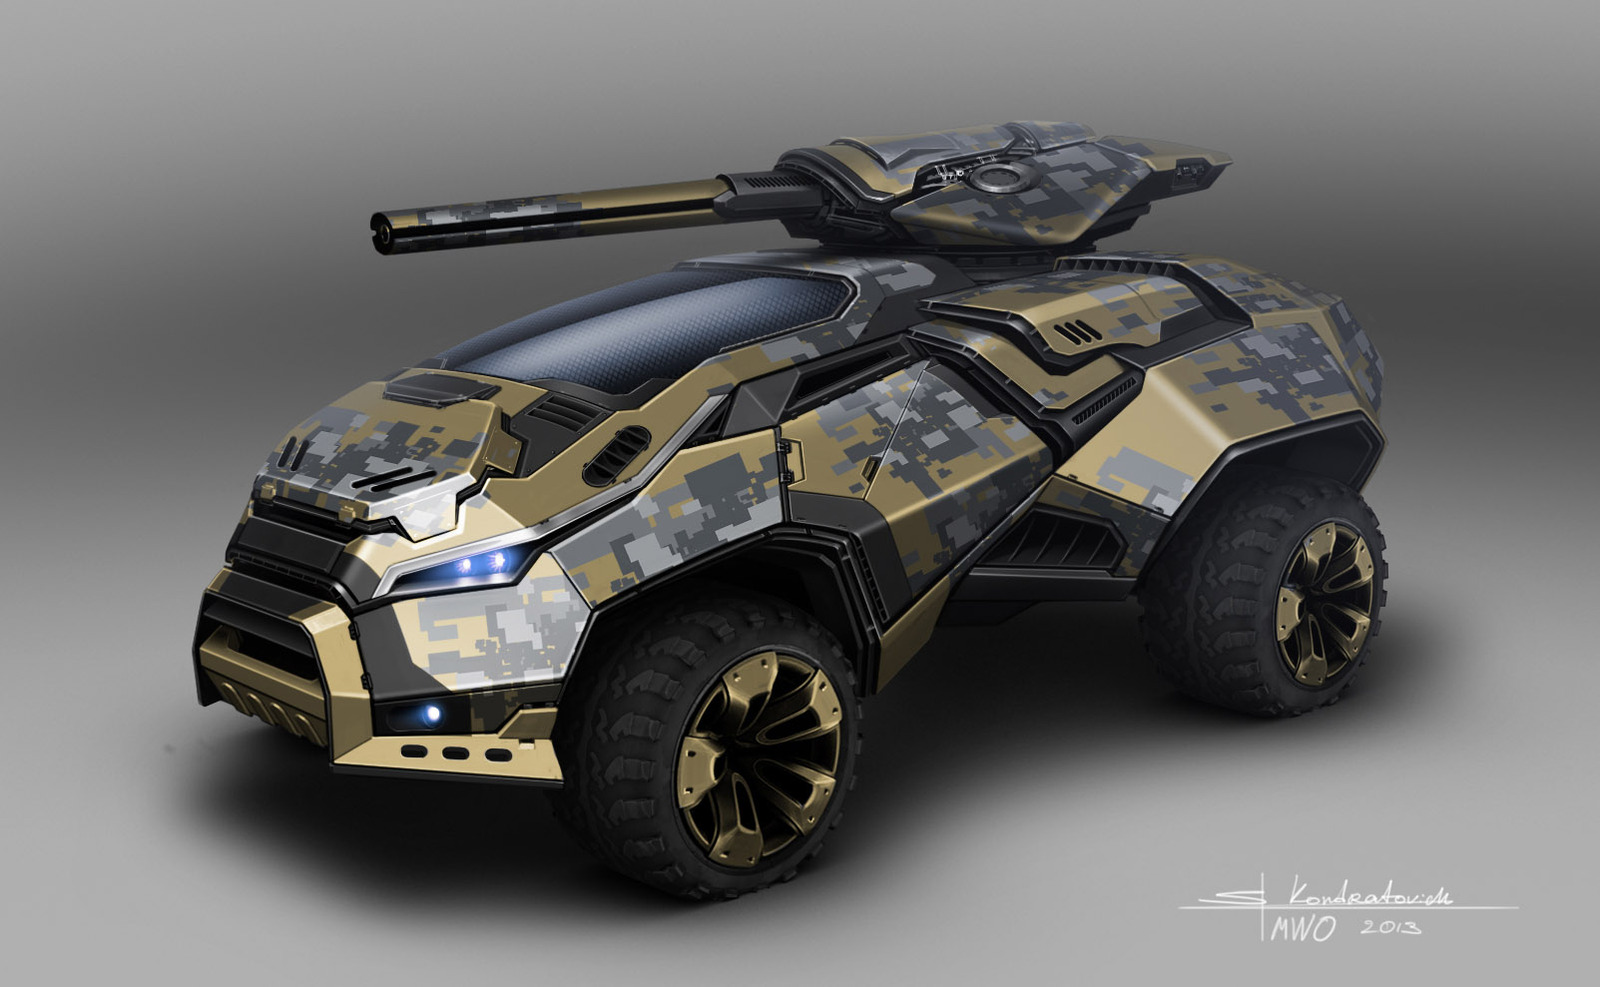 Image - 1600x987 19055 MWO army vehicle concept art 10 2d sci fi ...